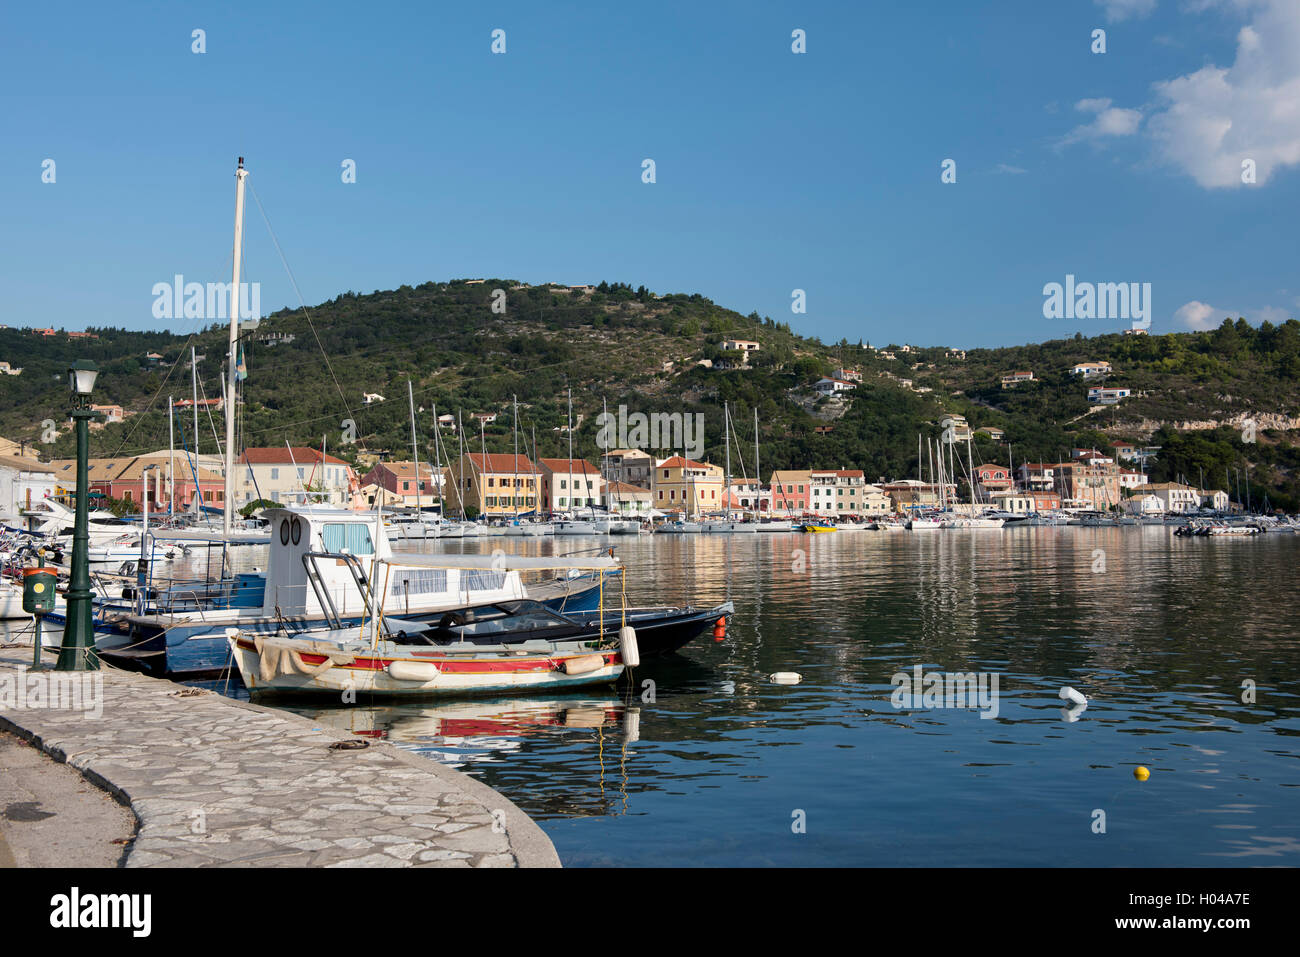 Old fishing boats and modern yachts in Gaios harbour on Paxos, The Ionian Islands, The Greek Islands, Greece, Europe - Stock Image